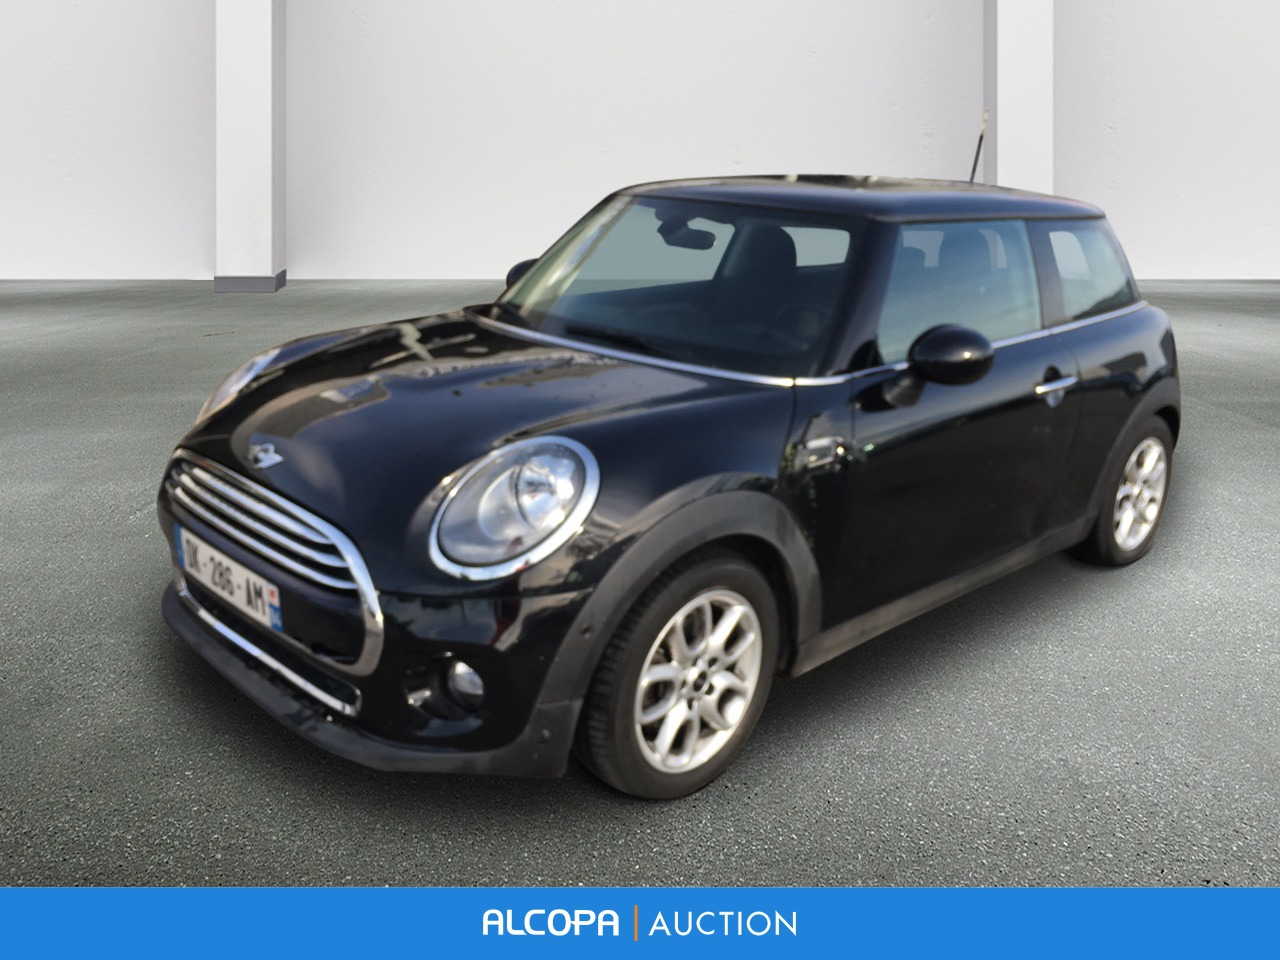 Mini Mini F56 Mini Cooper D 116 Ch Pack Chili A Alcopa Auction